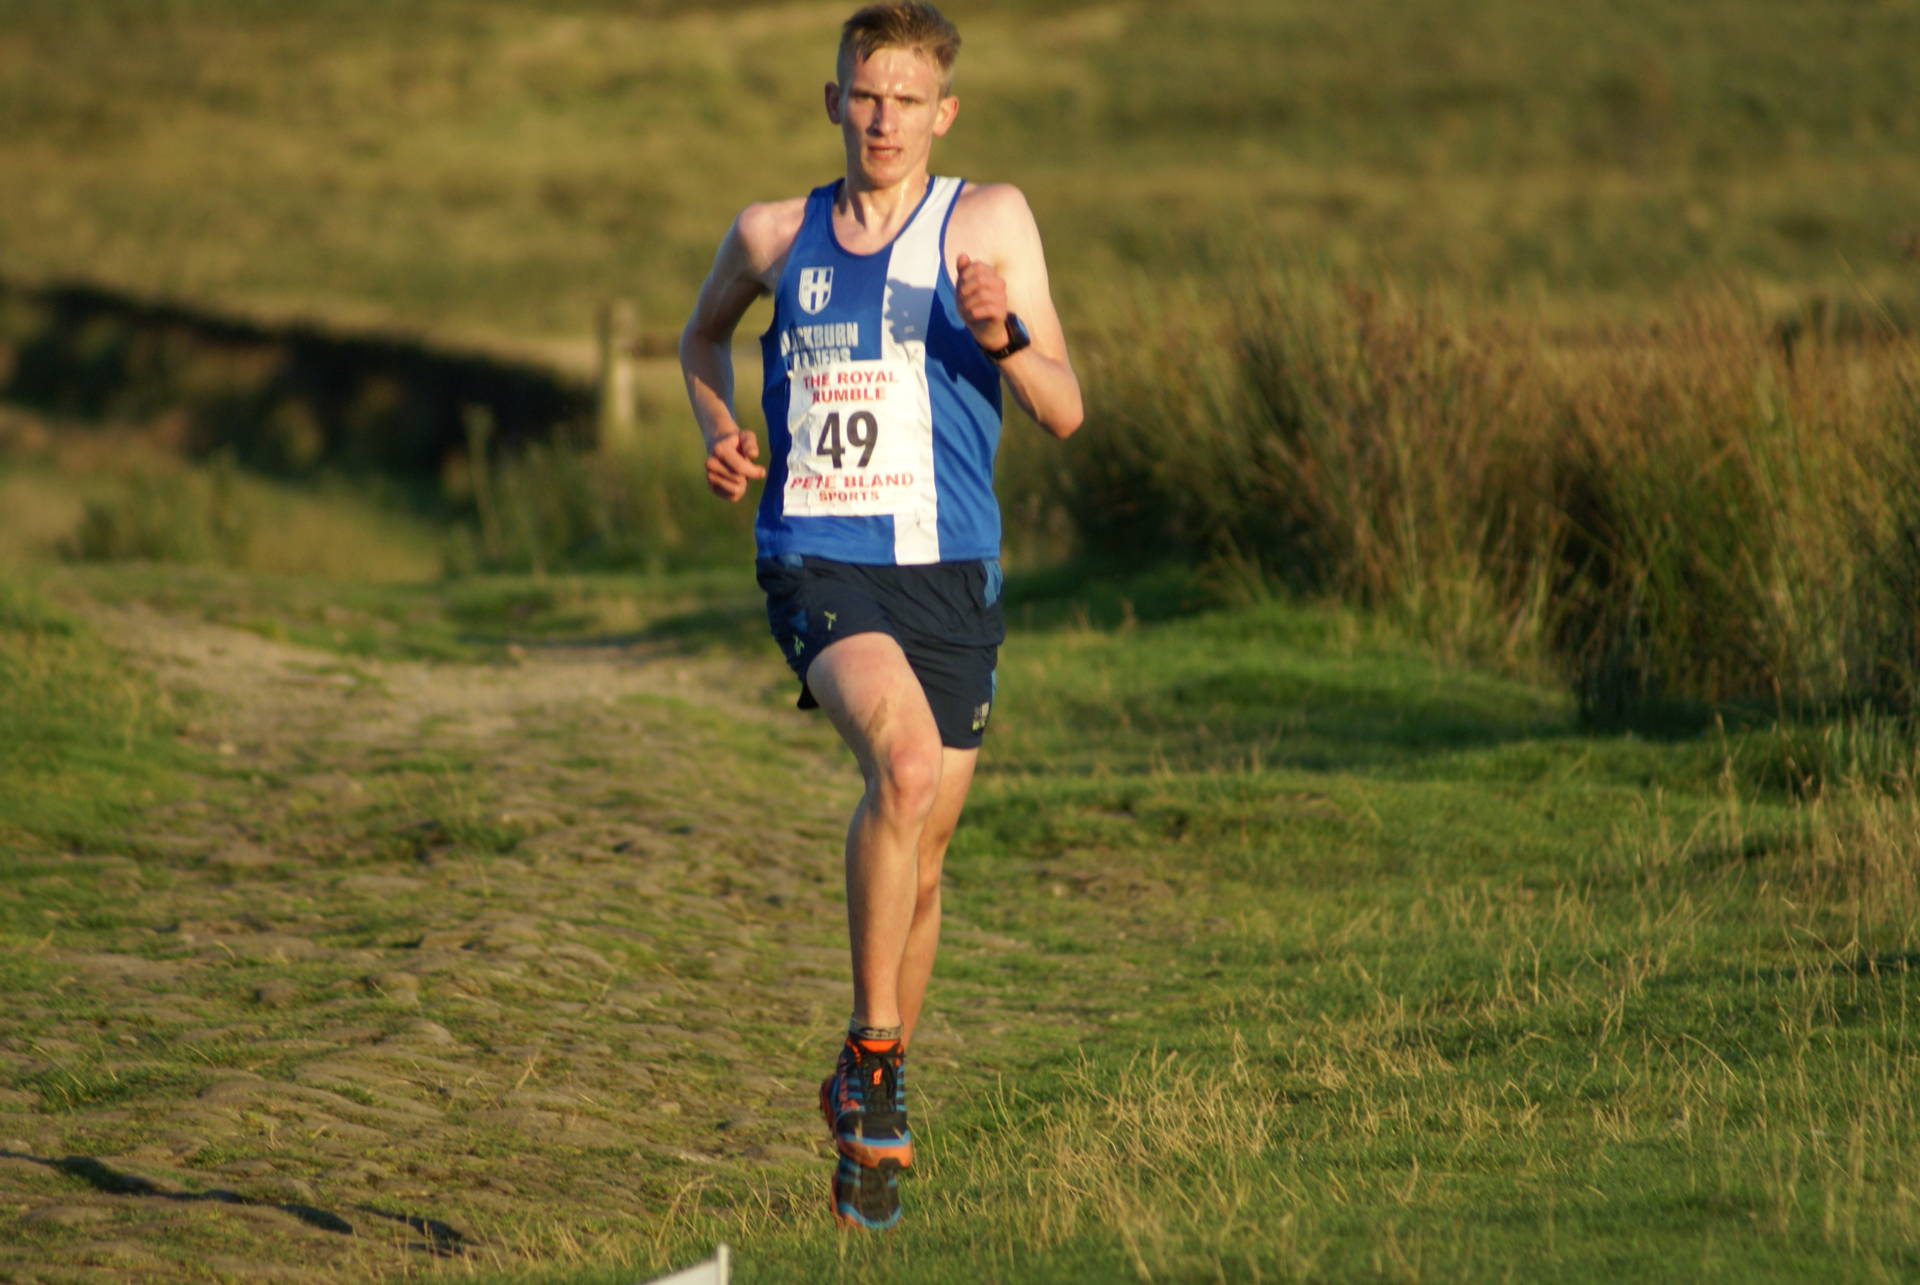 Royal Rumble win for Jack – PB's for Harriers youngsters at Warrington Open & Trafford Medal Meeting – Seasons 1500m best for Rob in BMC – Joe wins Vernon 5k